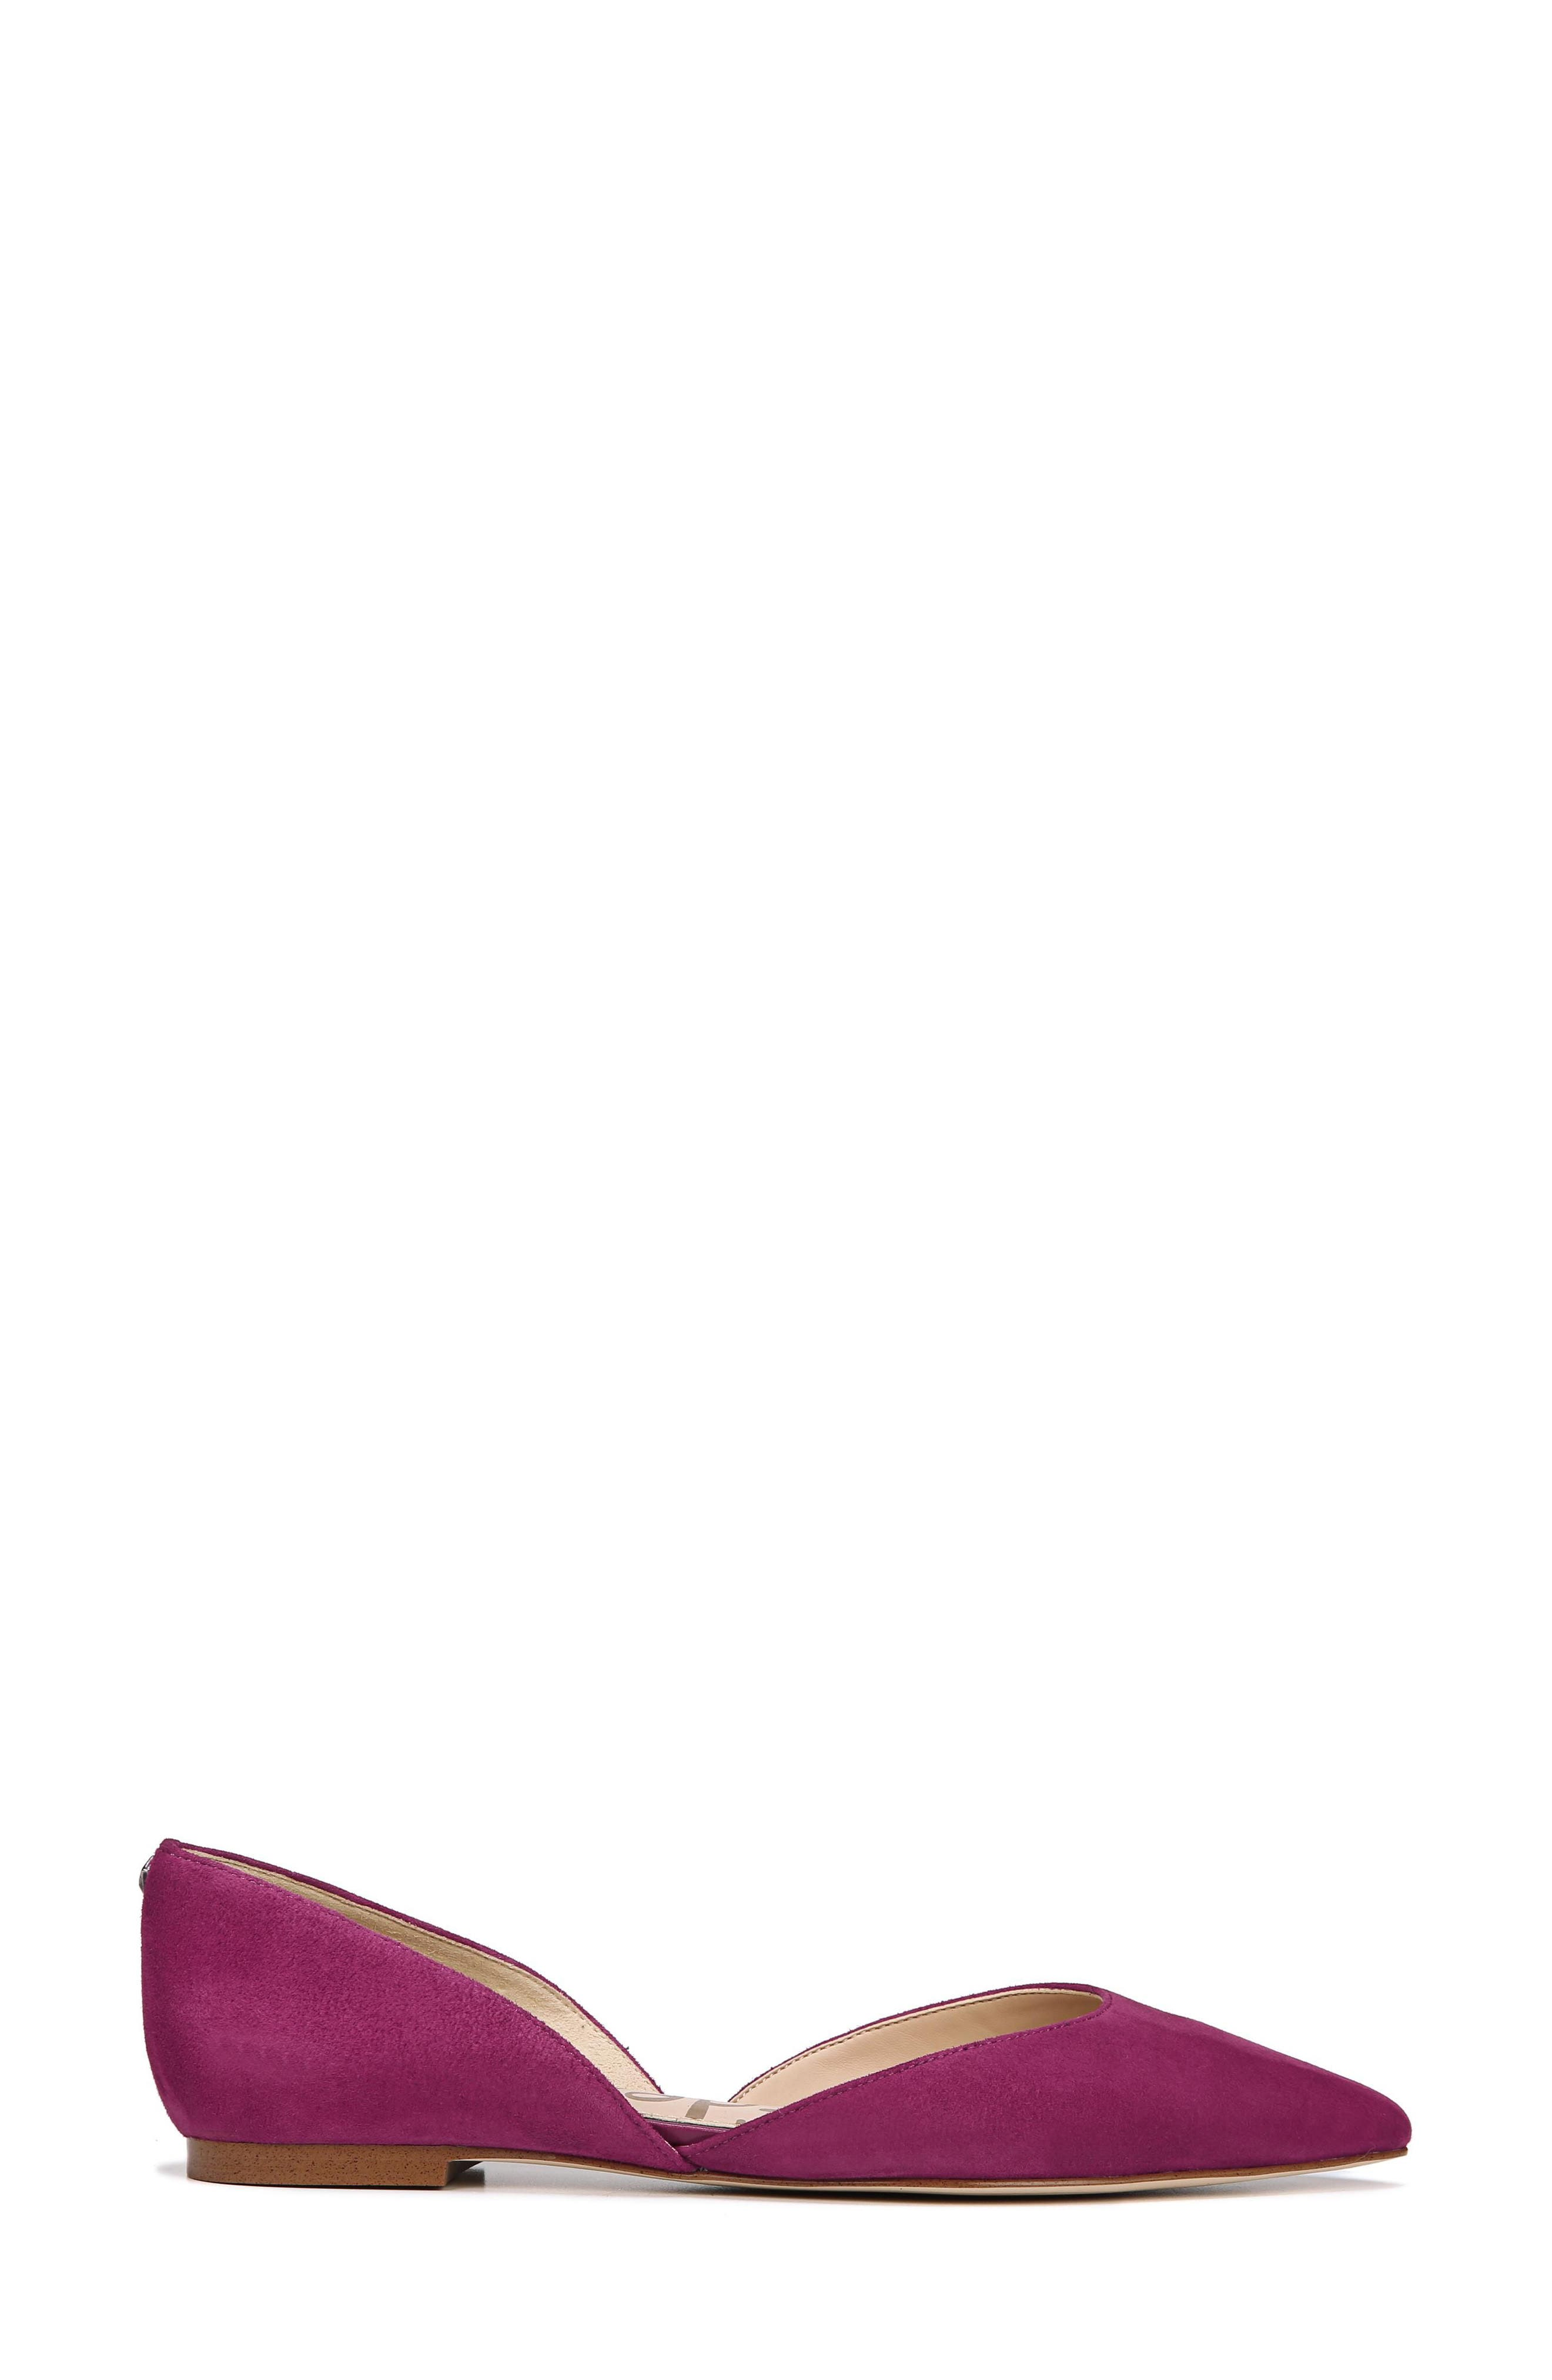 Rodney Pointy Toe d'Orsay Flat,                             Alternate thumbnail 3, color,                             PURPLE PLUM SUEDE